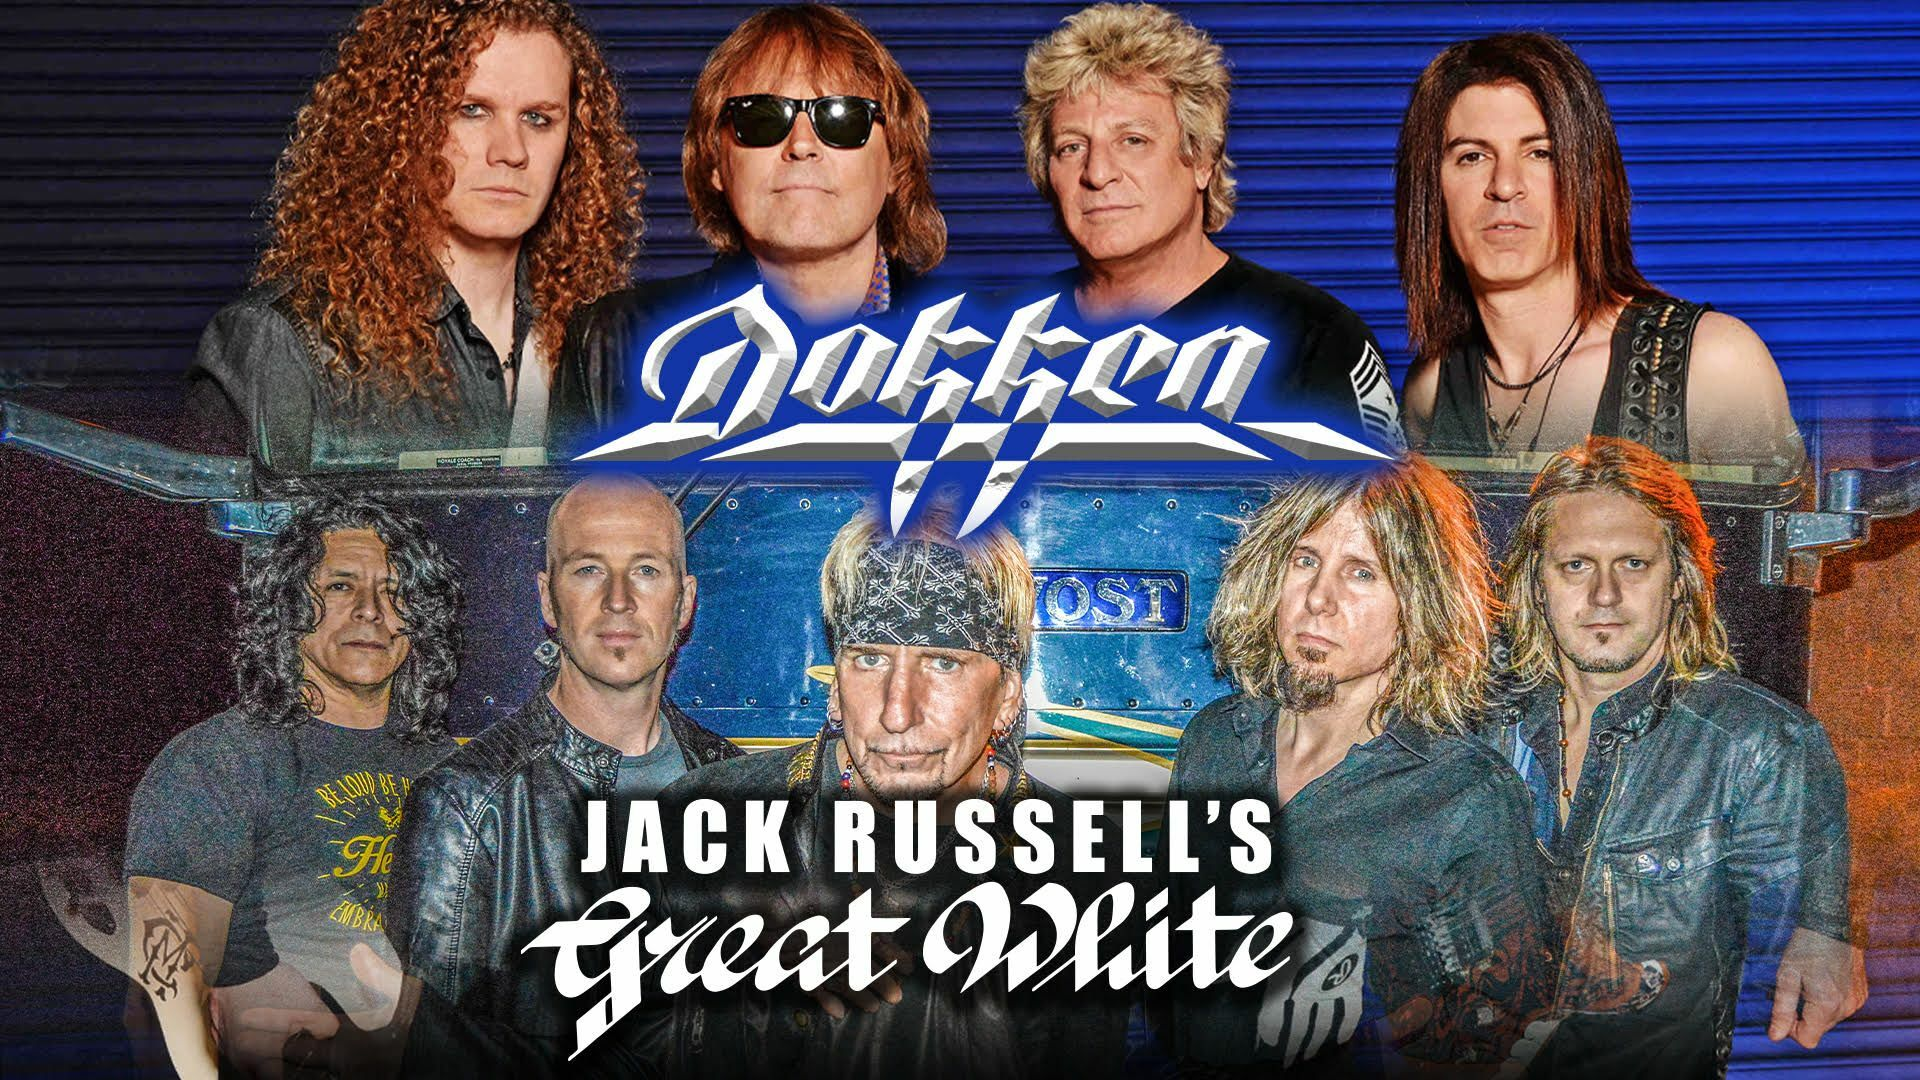 Dokken and Jack Russell's Great White